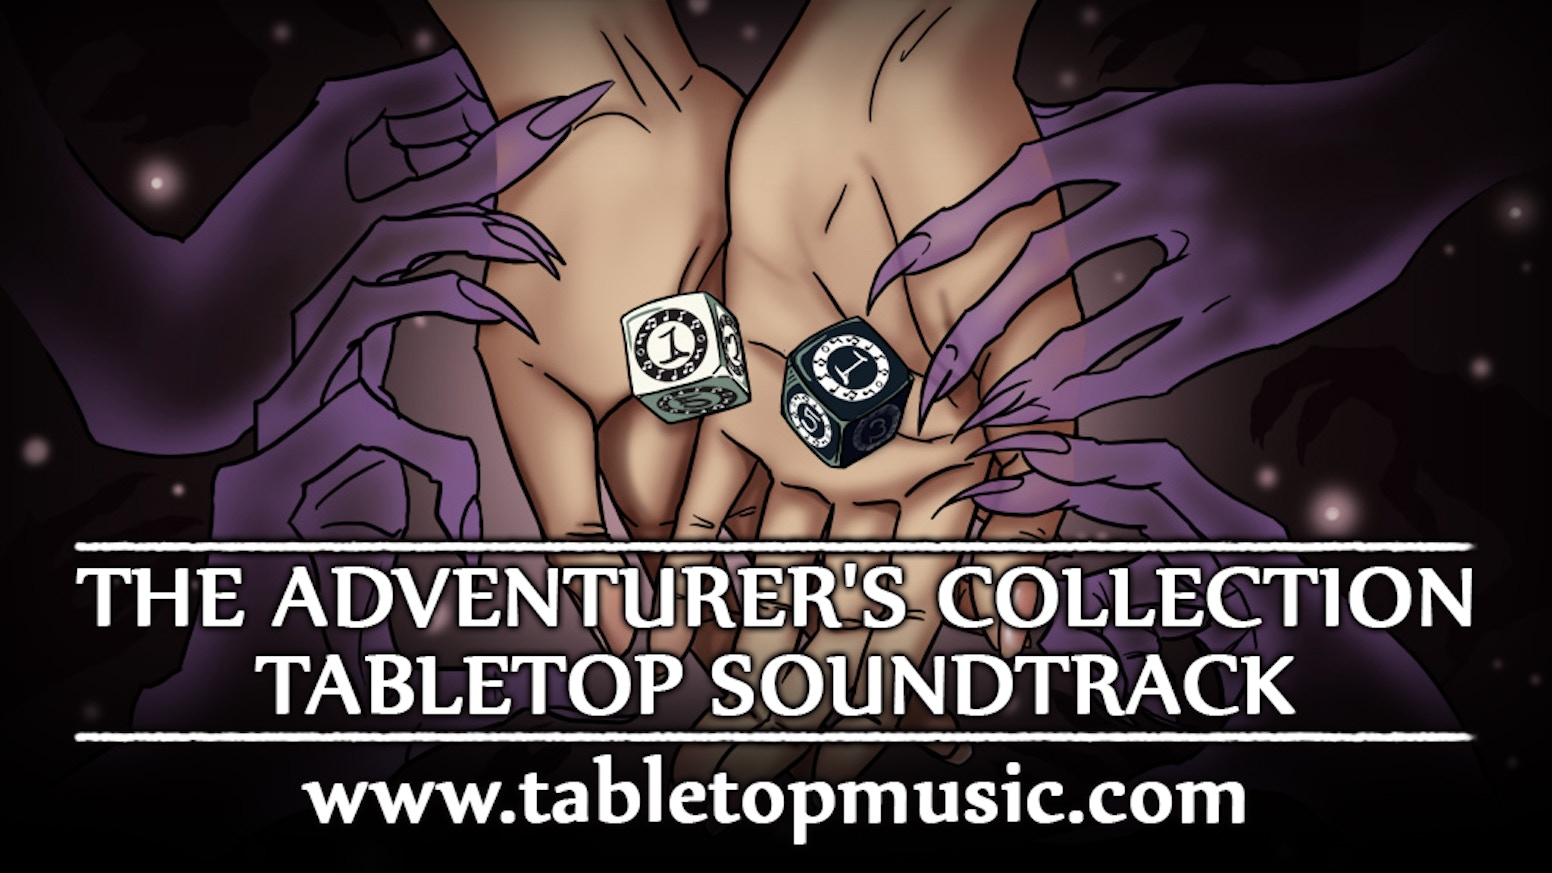 The Adventurer's Collection Tabletop Soundtrack is a music collection designed to create the perfect mood while playing tabletop games!